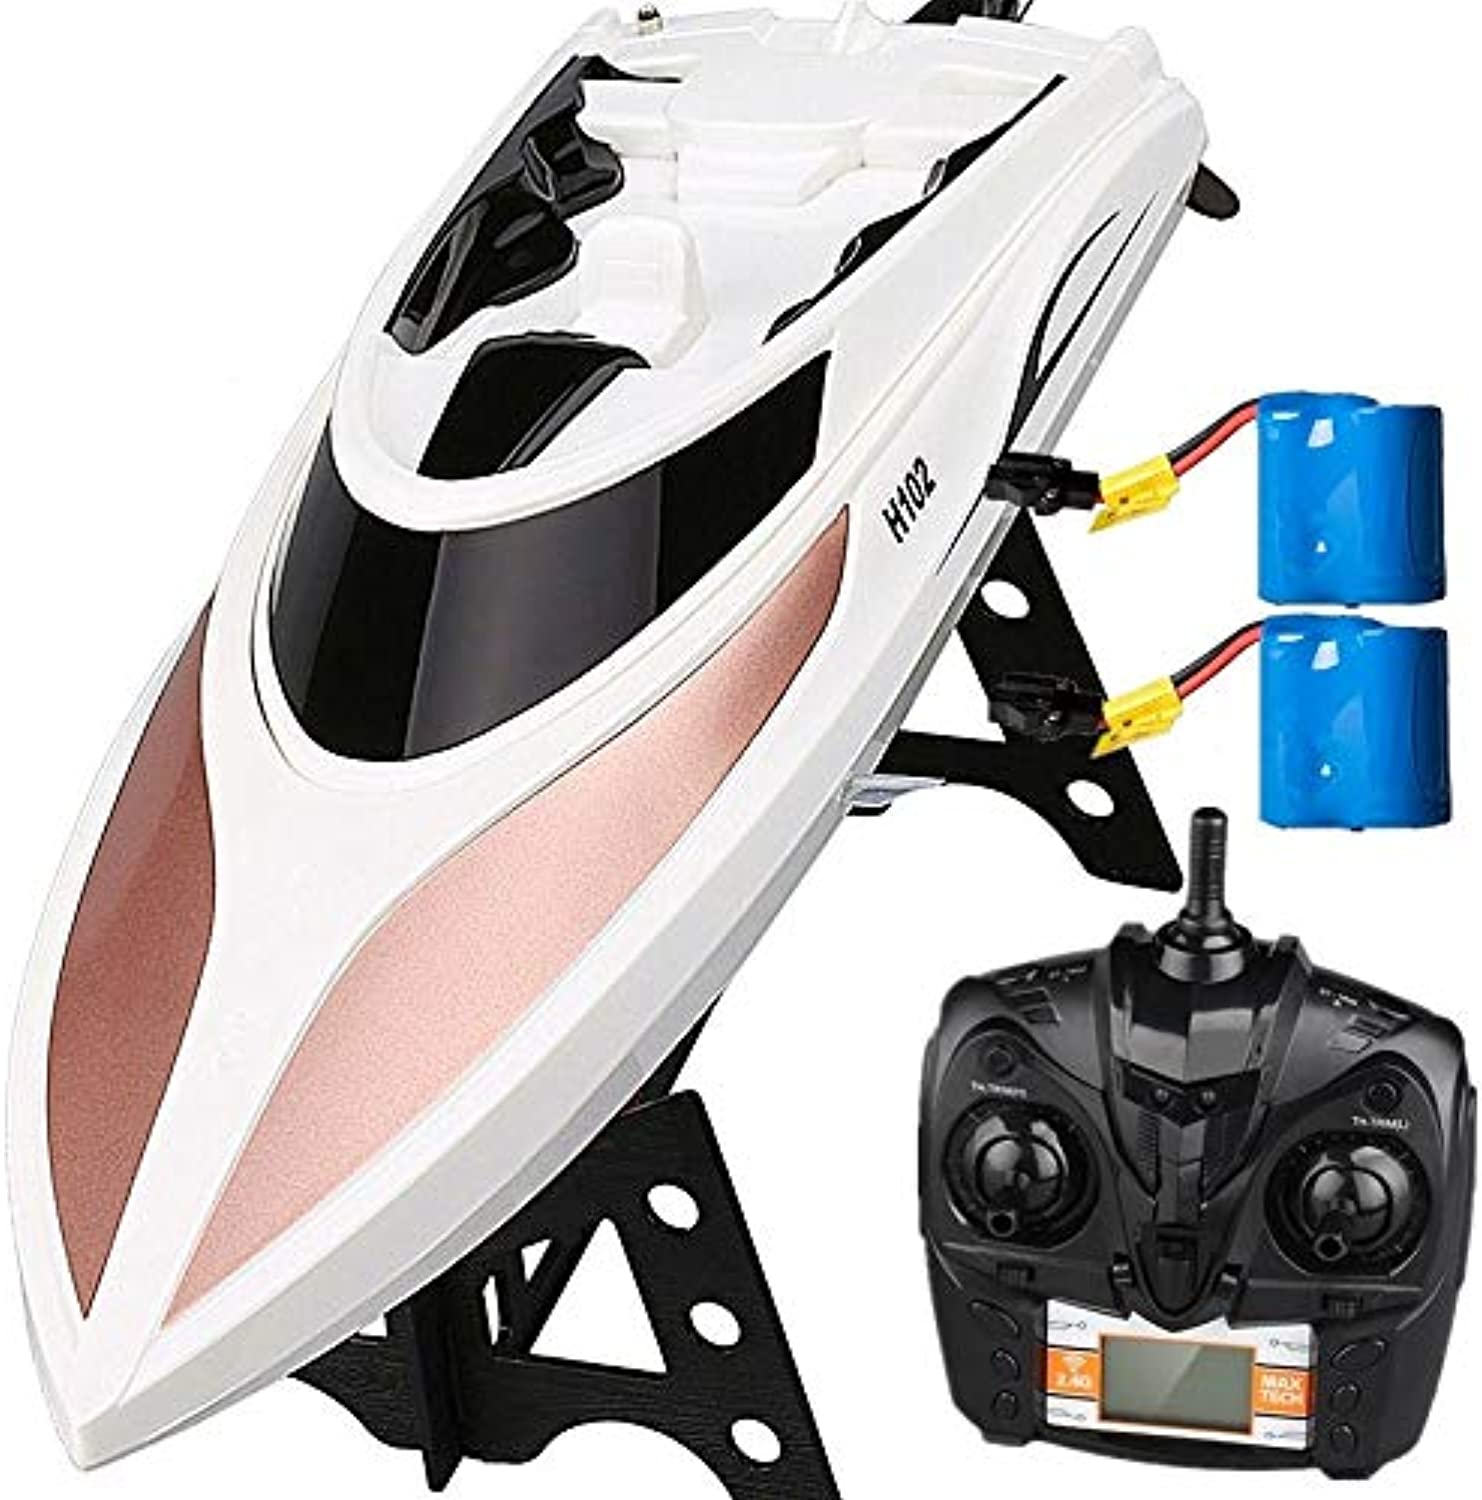 Virhuck RC Boat, Remote Control Boat for Pools and Lakes 2.4GHz 2530 KM H High Speed RC Racing Boats for Kids & Adults, 180° Flip, SelfRighting, Waterproof, Low Voltage Alarm, Bonus Battery